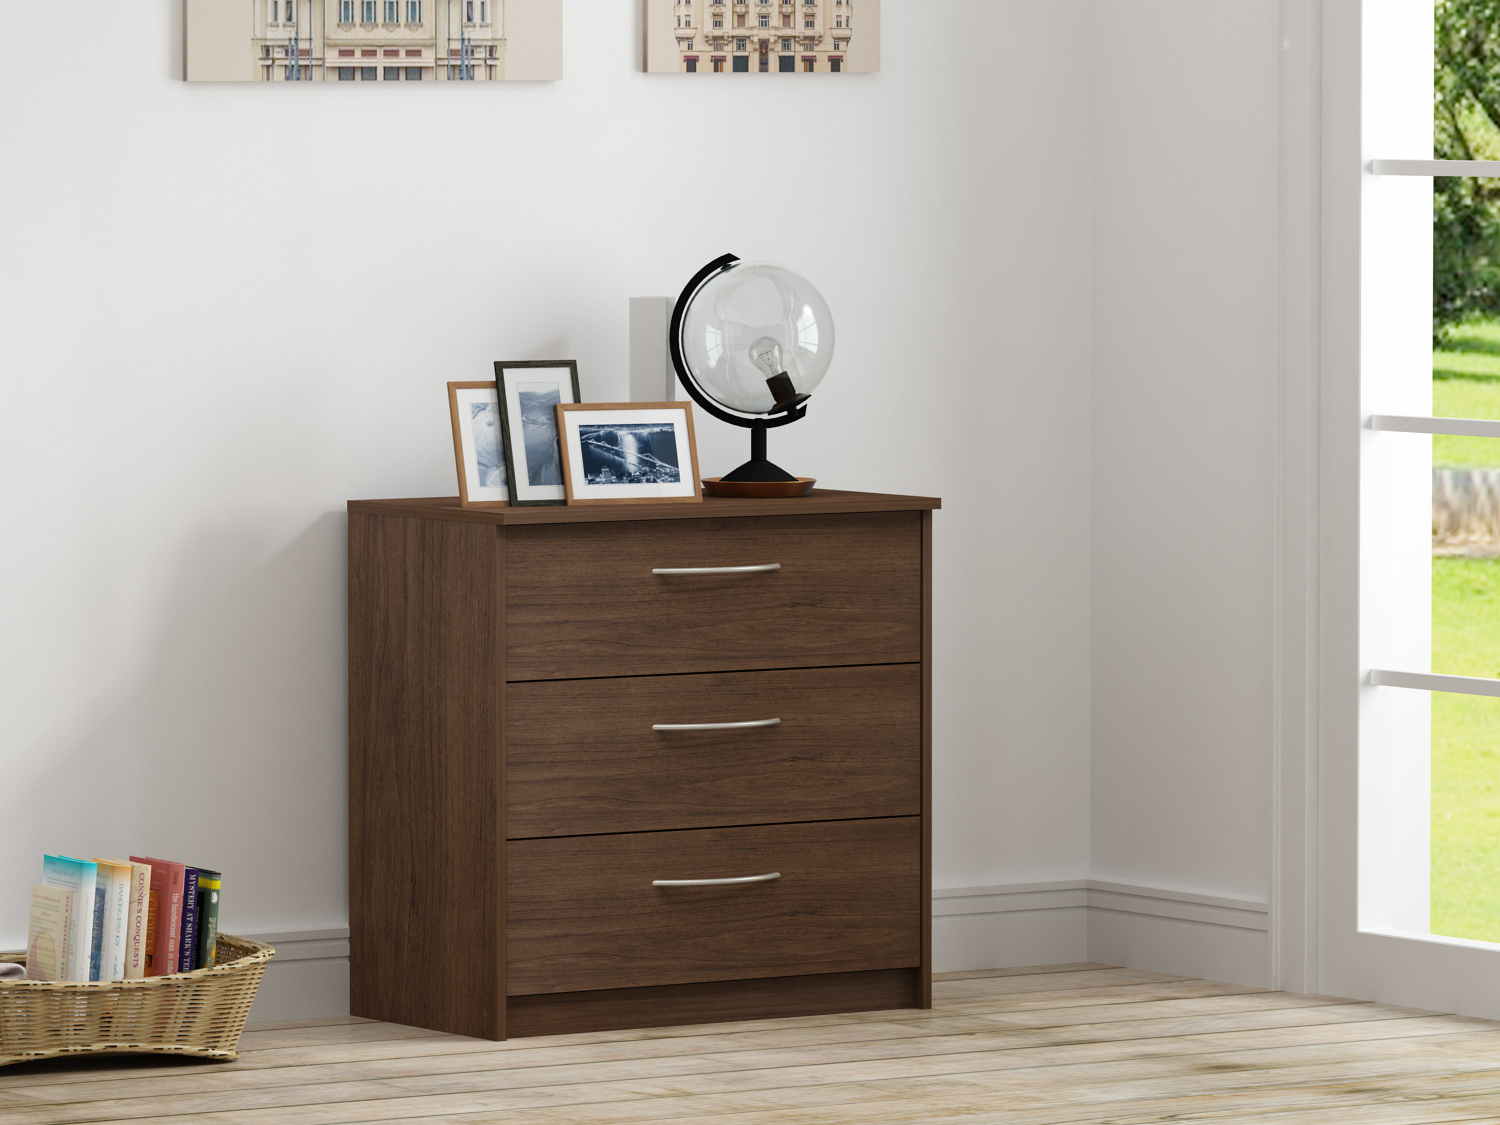 Click here to buy Homestar Finch 3-Drawer Dresser, Multiple Finishes by HOMESTAR NORTH AMERICA LLC.